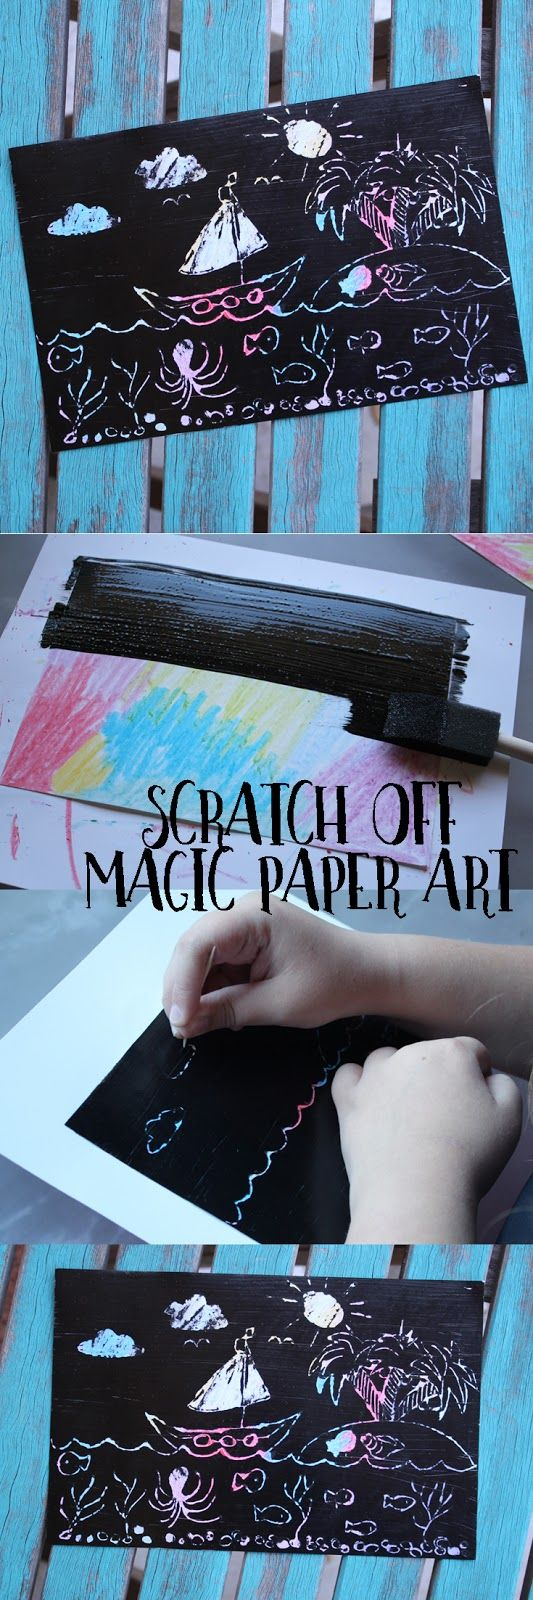 Scratch off magic paper art is an easy and fun craft for kids of all ages. It's so cool!